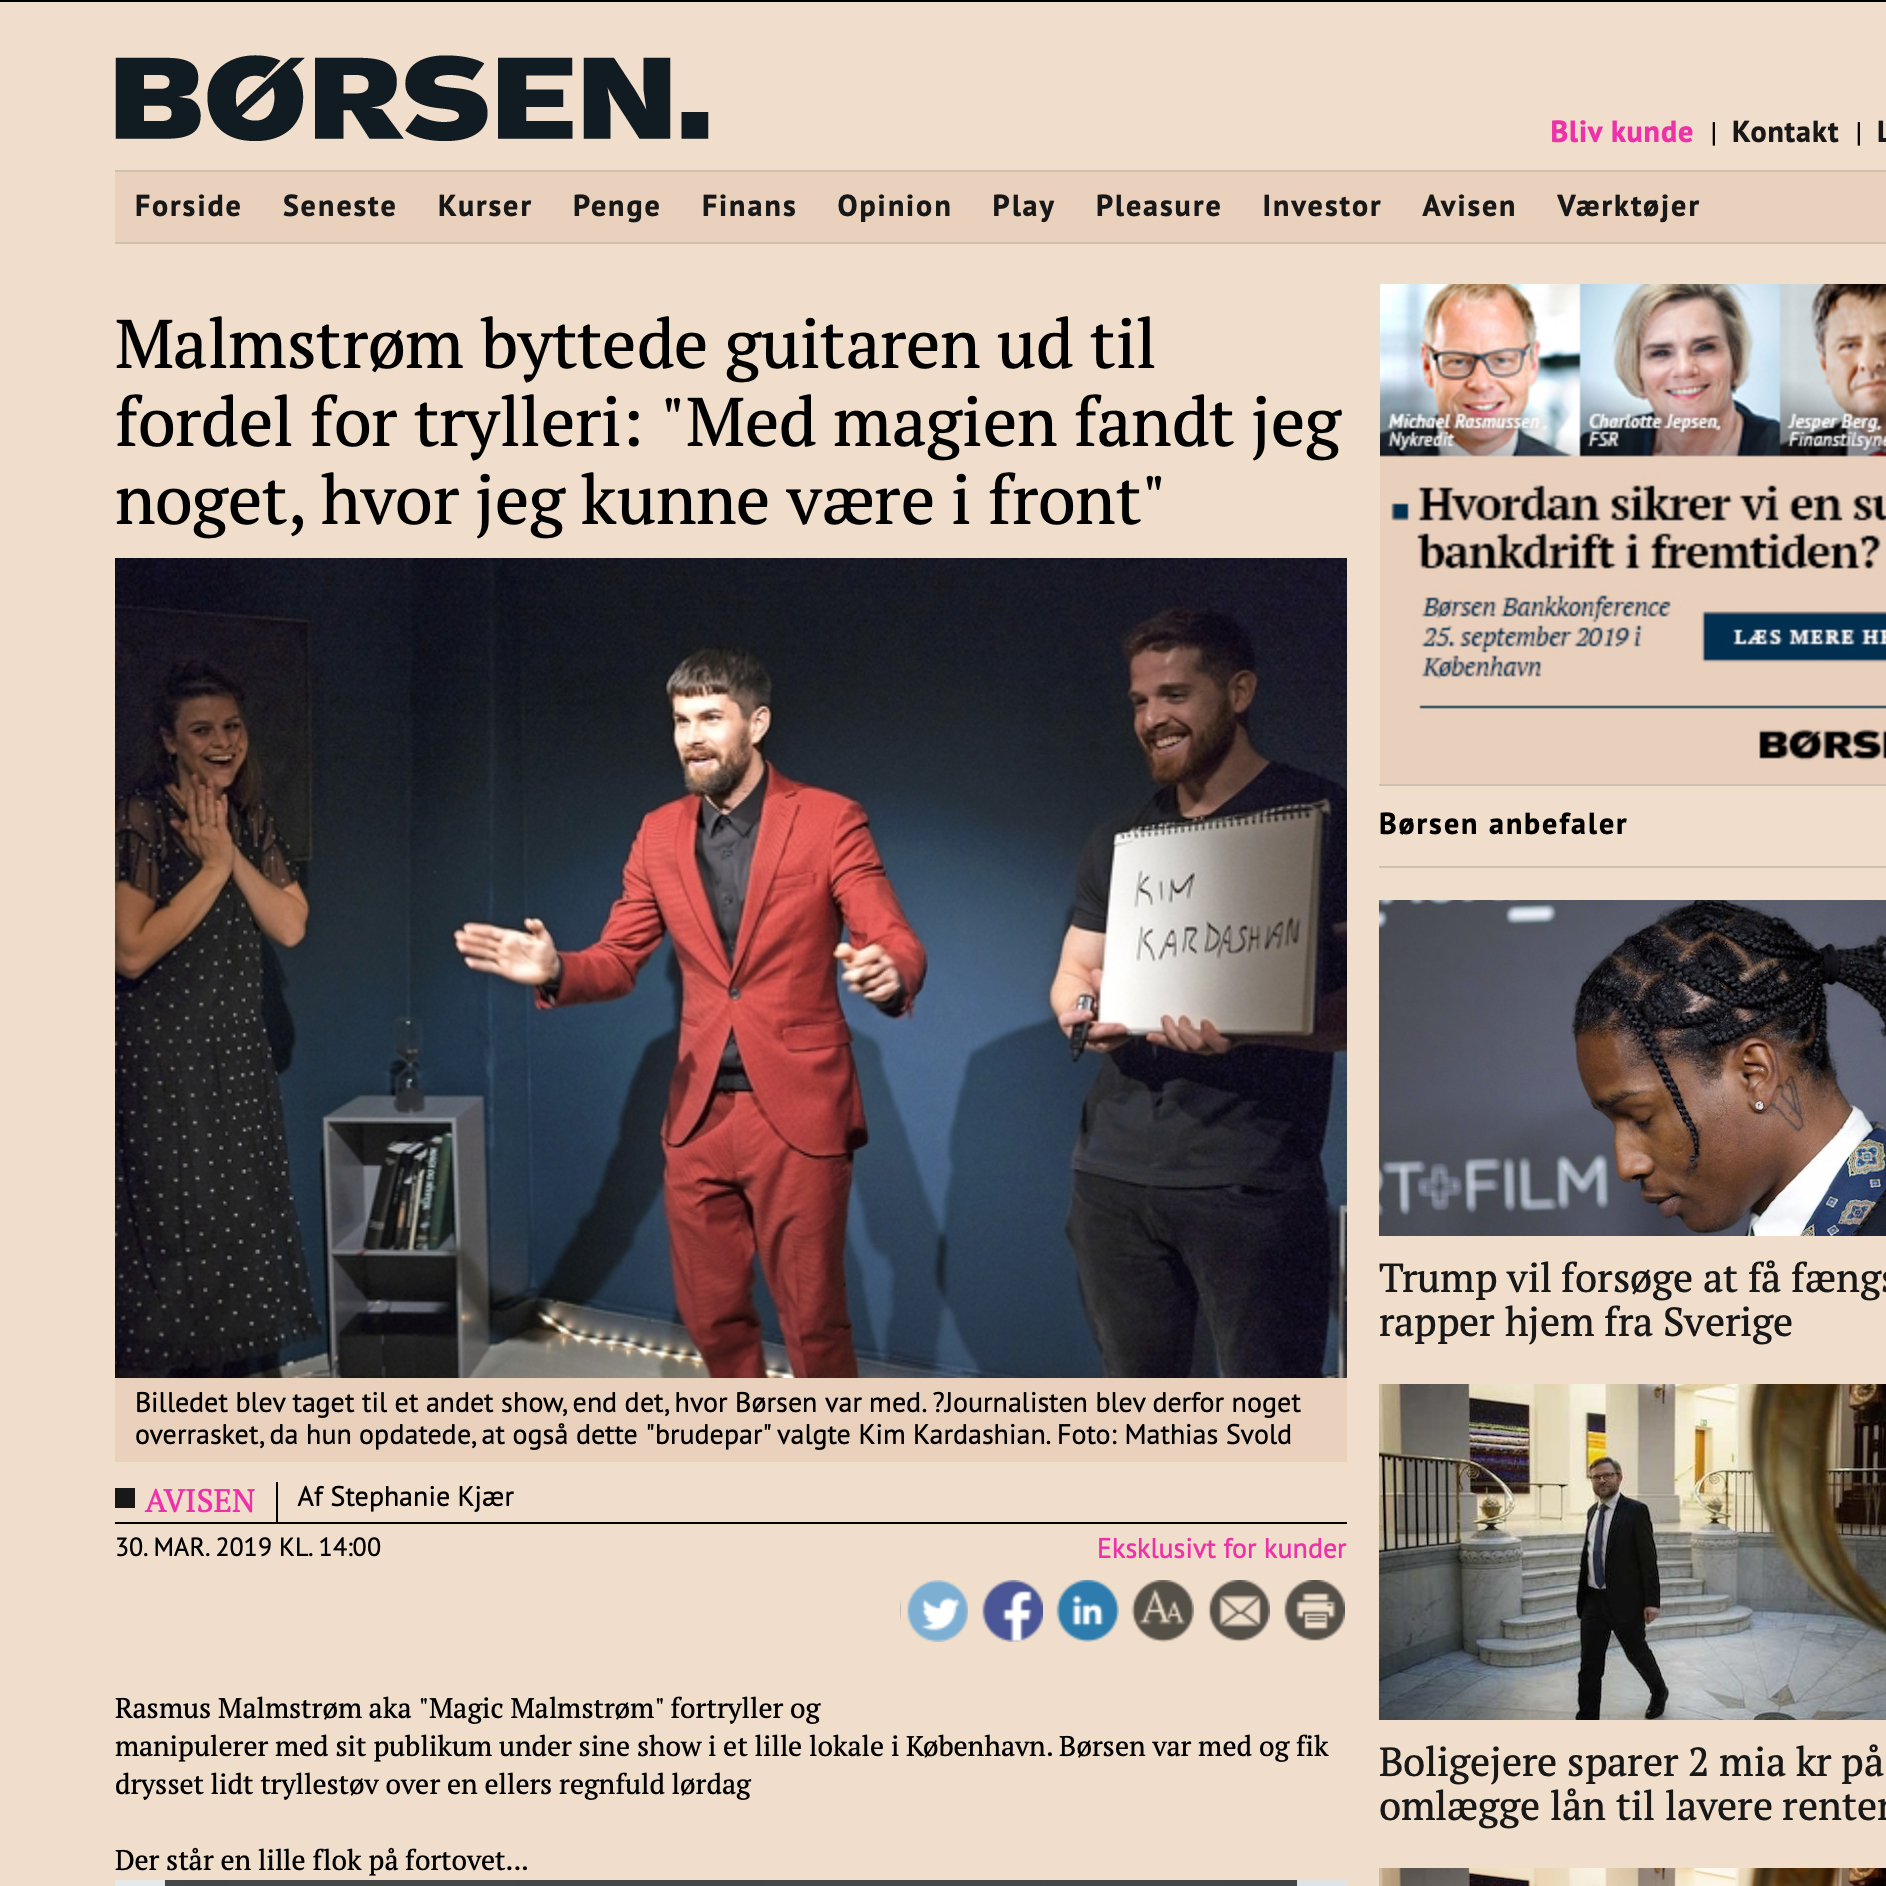 Interview with the Danish newspaper Børsen